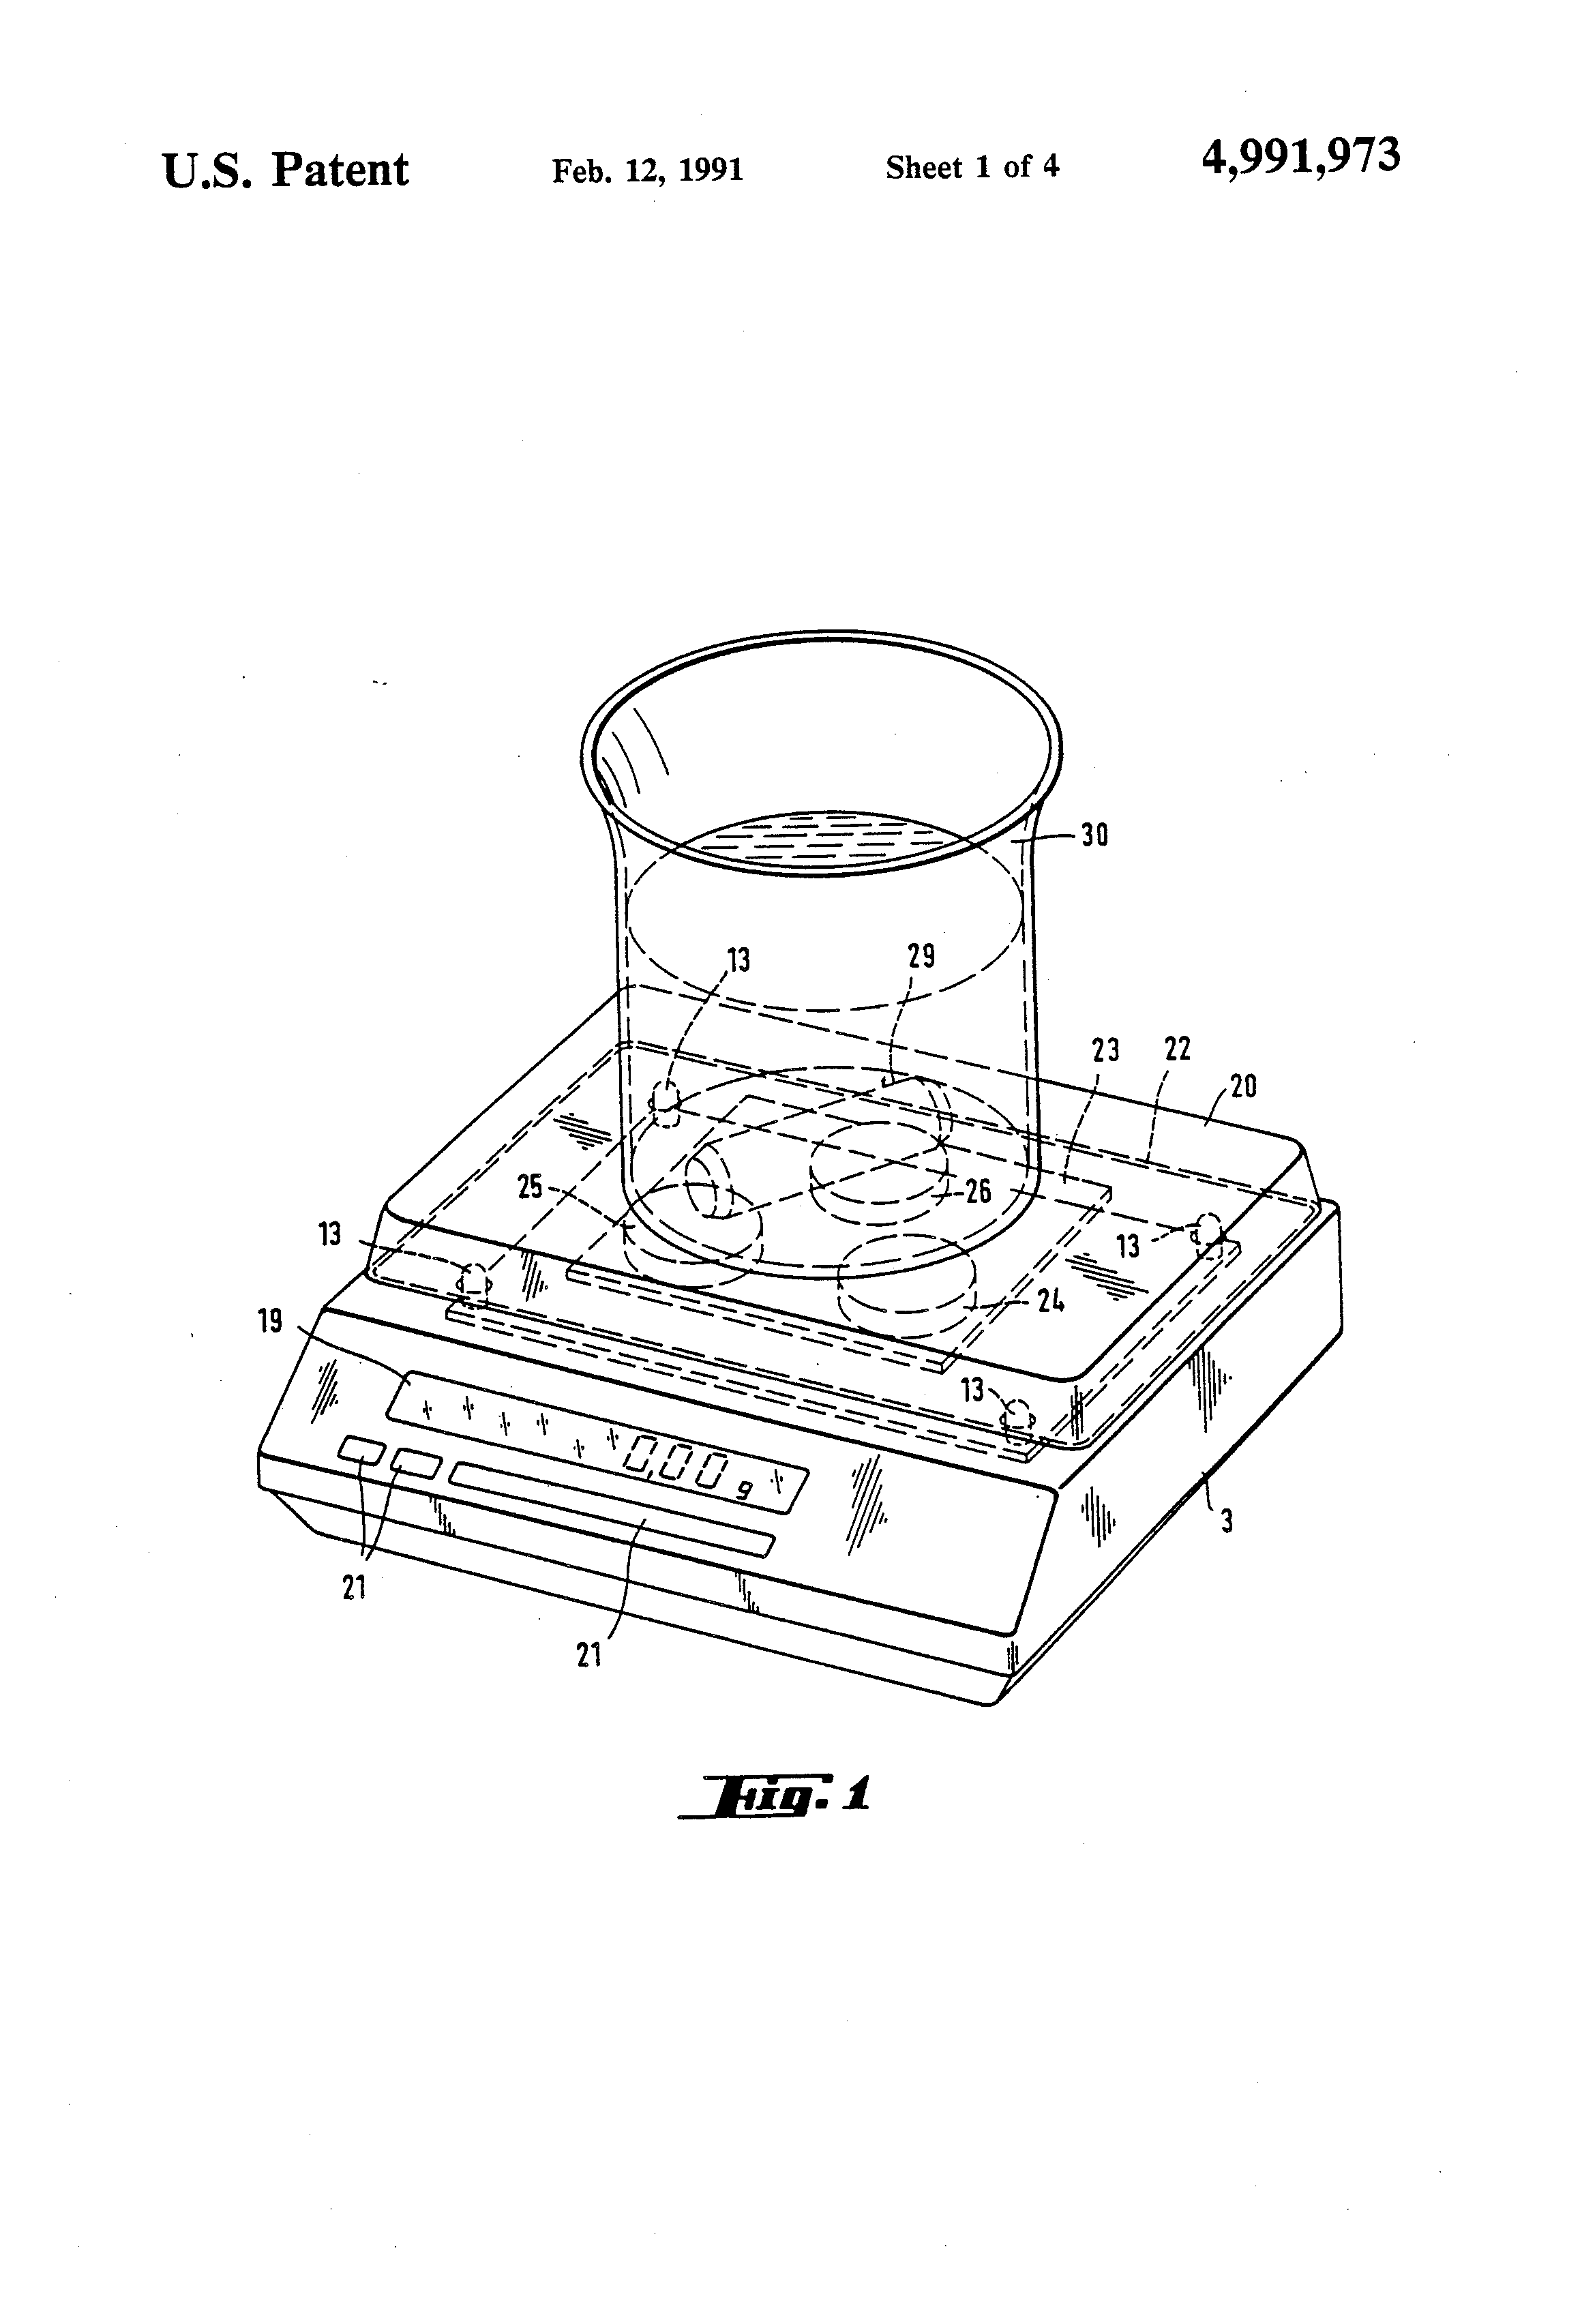 patent us4991973 - electronic balance with scale on top